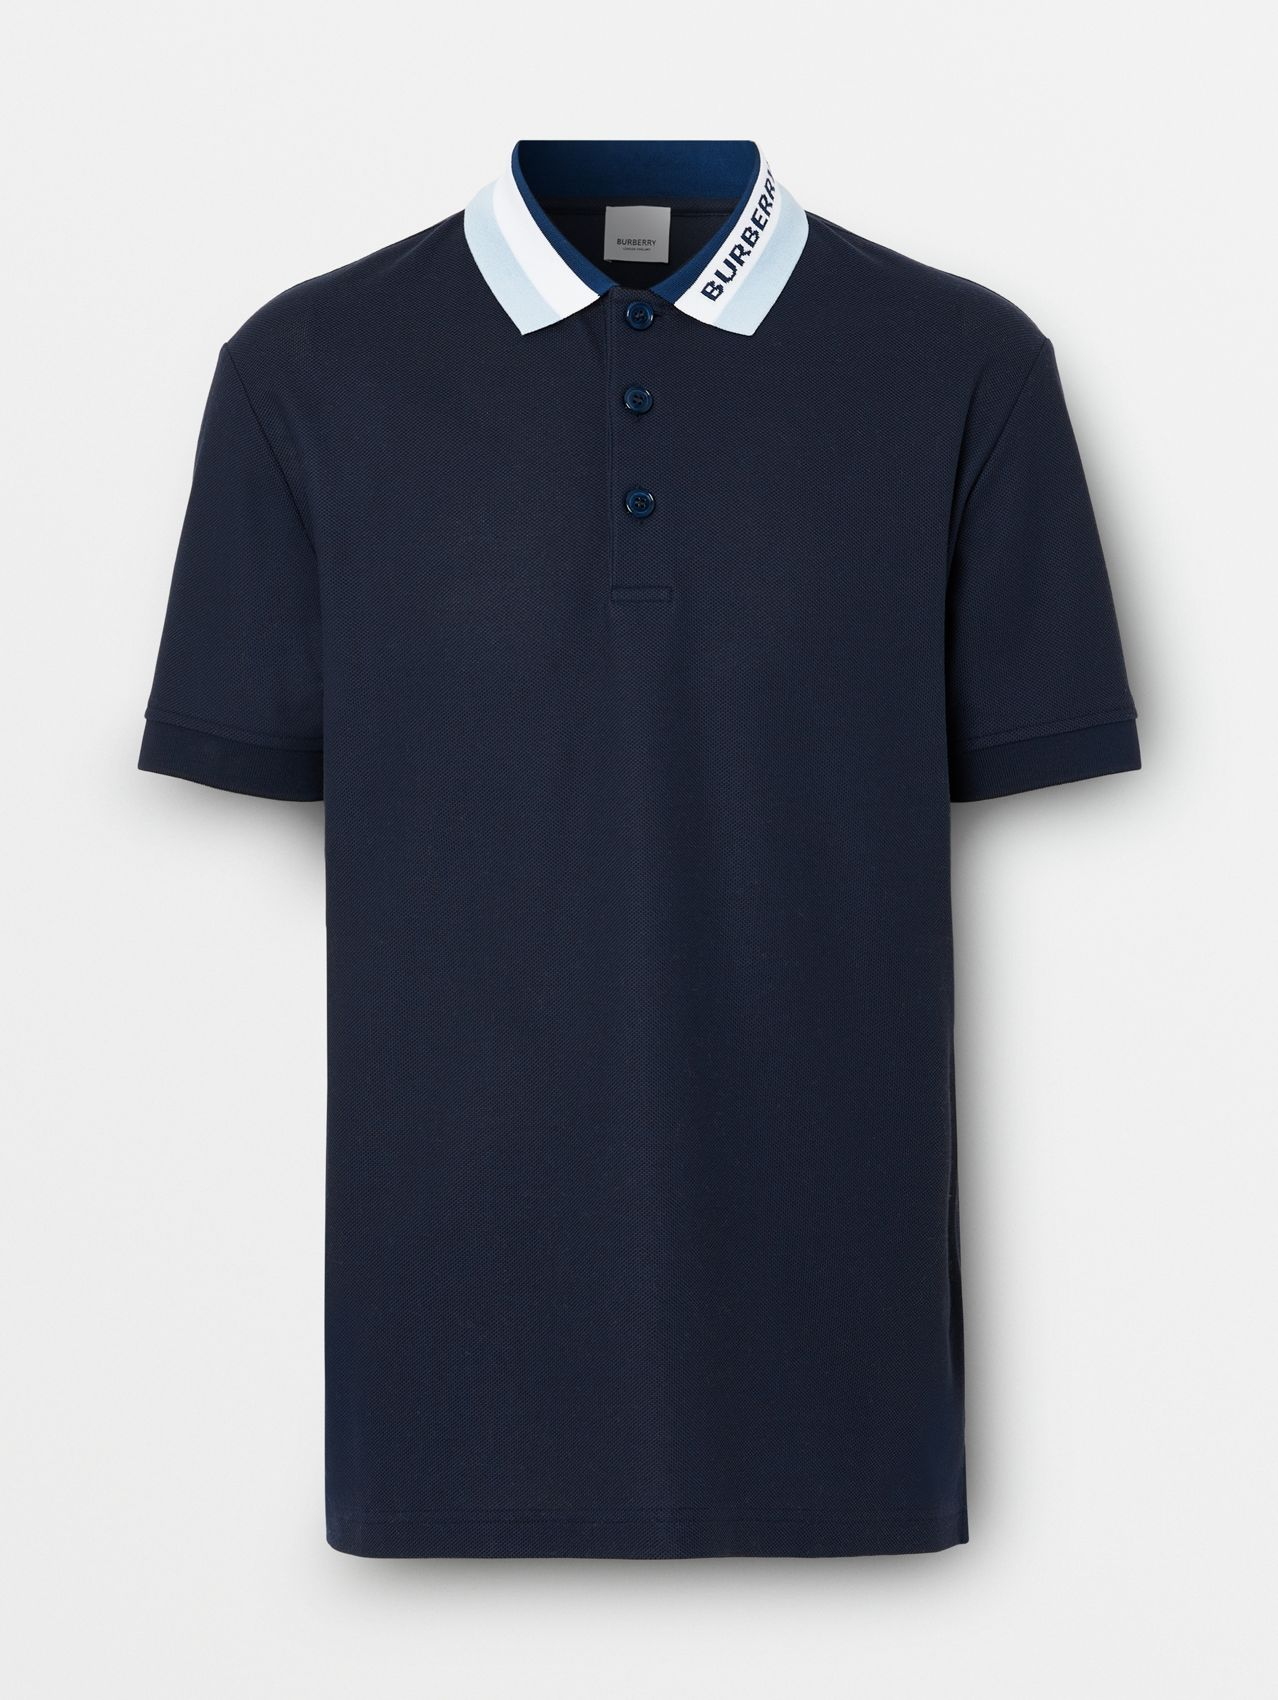 Logo Detail Cotton Piqué Polo Shirt in Navy